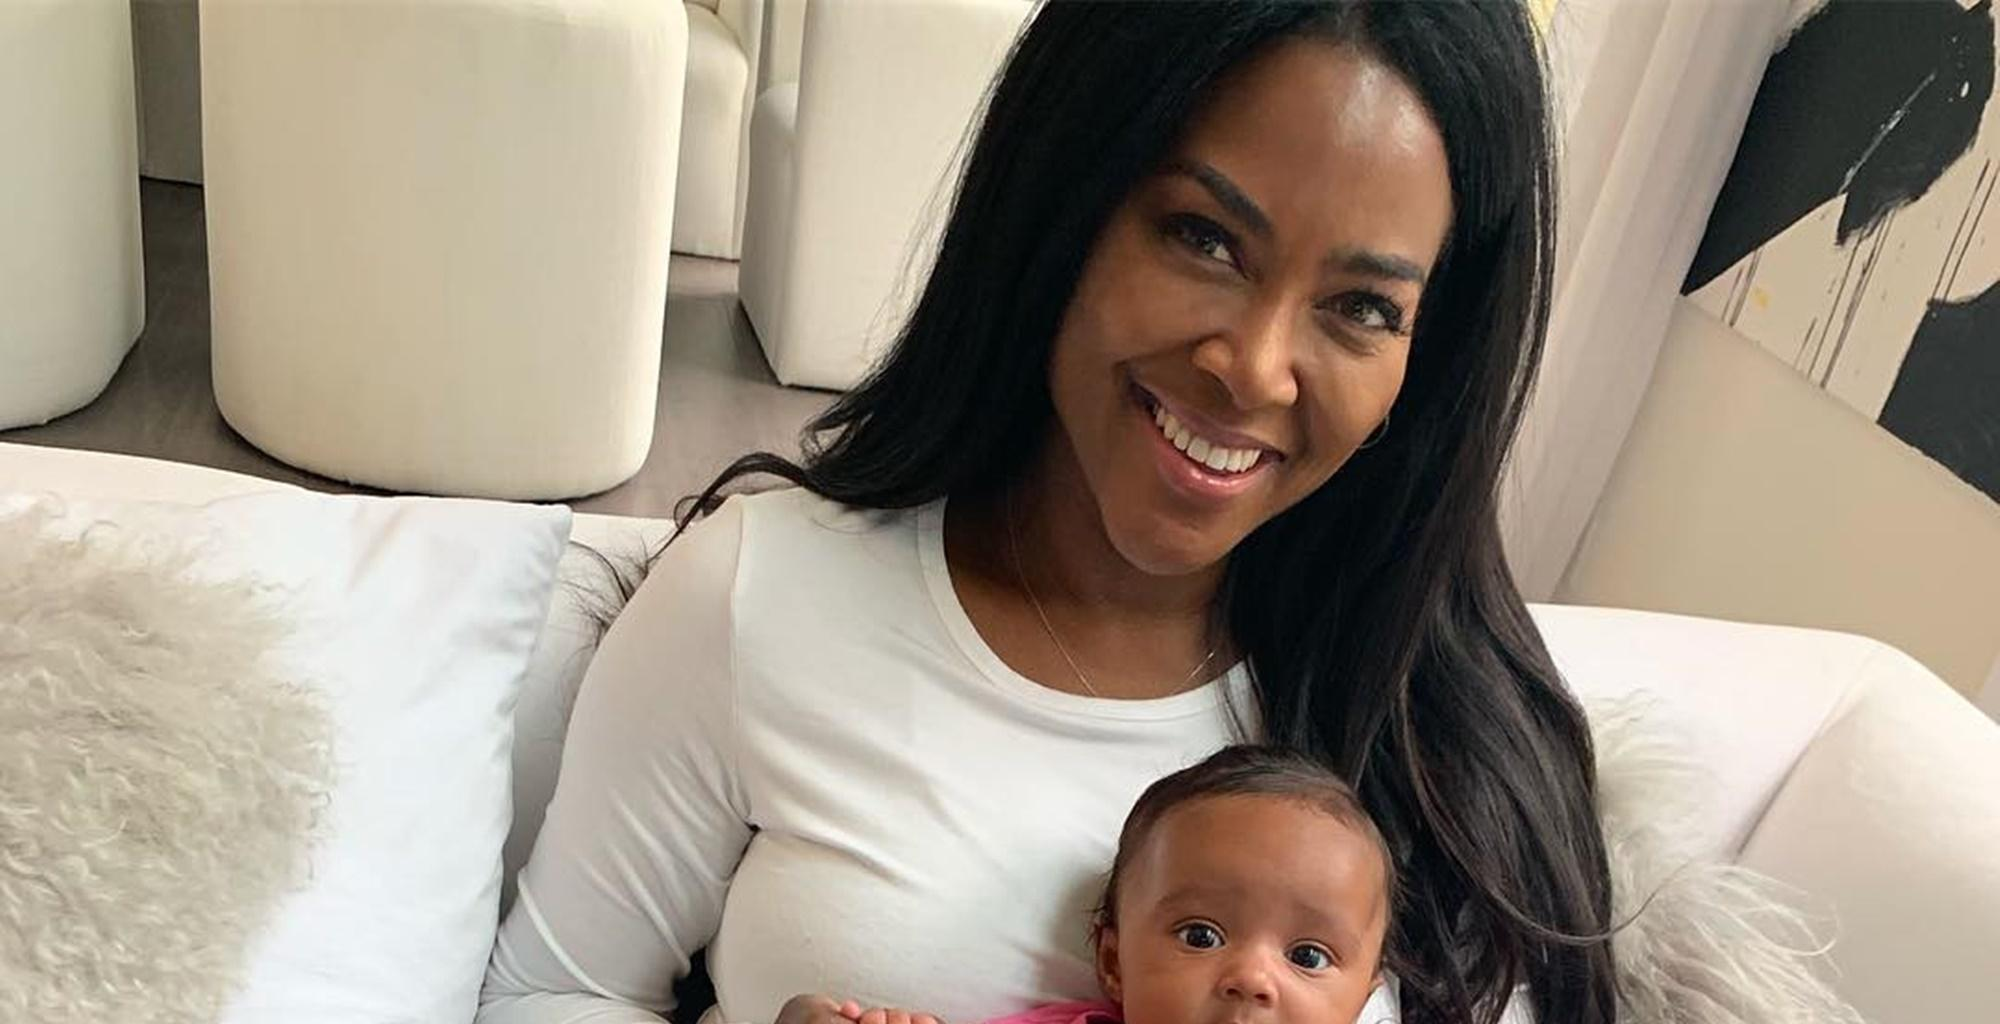 Kenya Moore Kills It In Little Black Dress Photo -- Curious Fans Have Questions About Her Vanishing Waistline